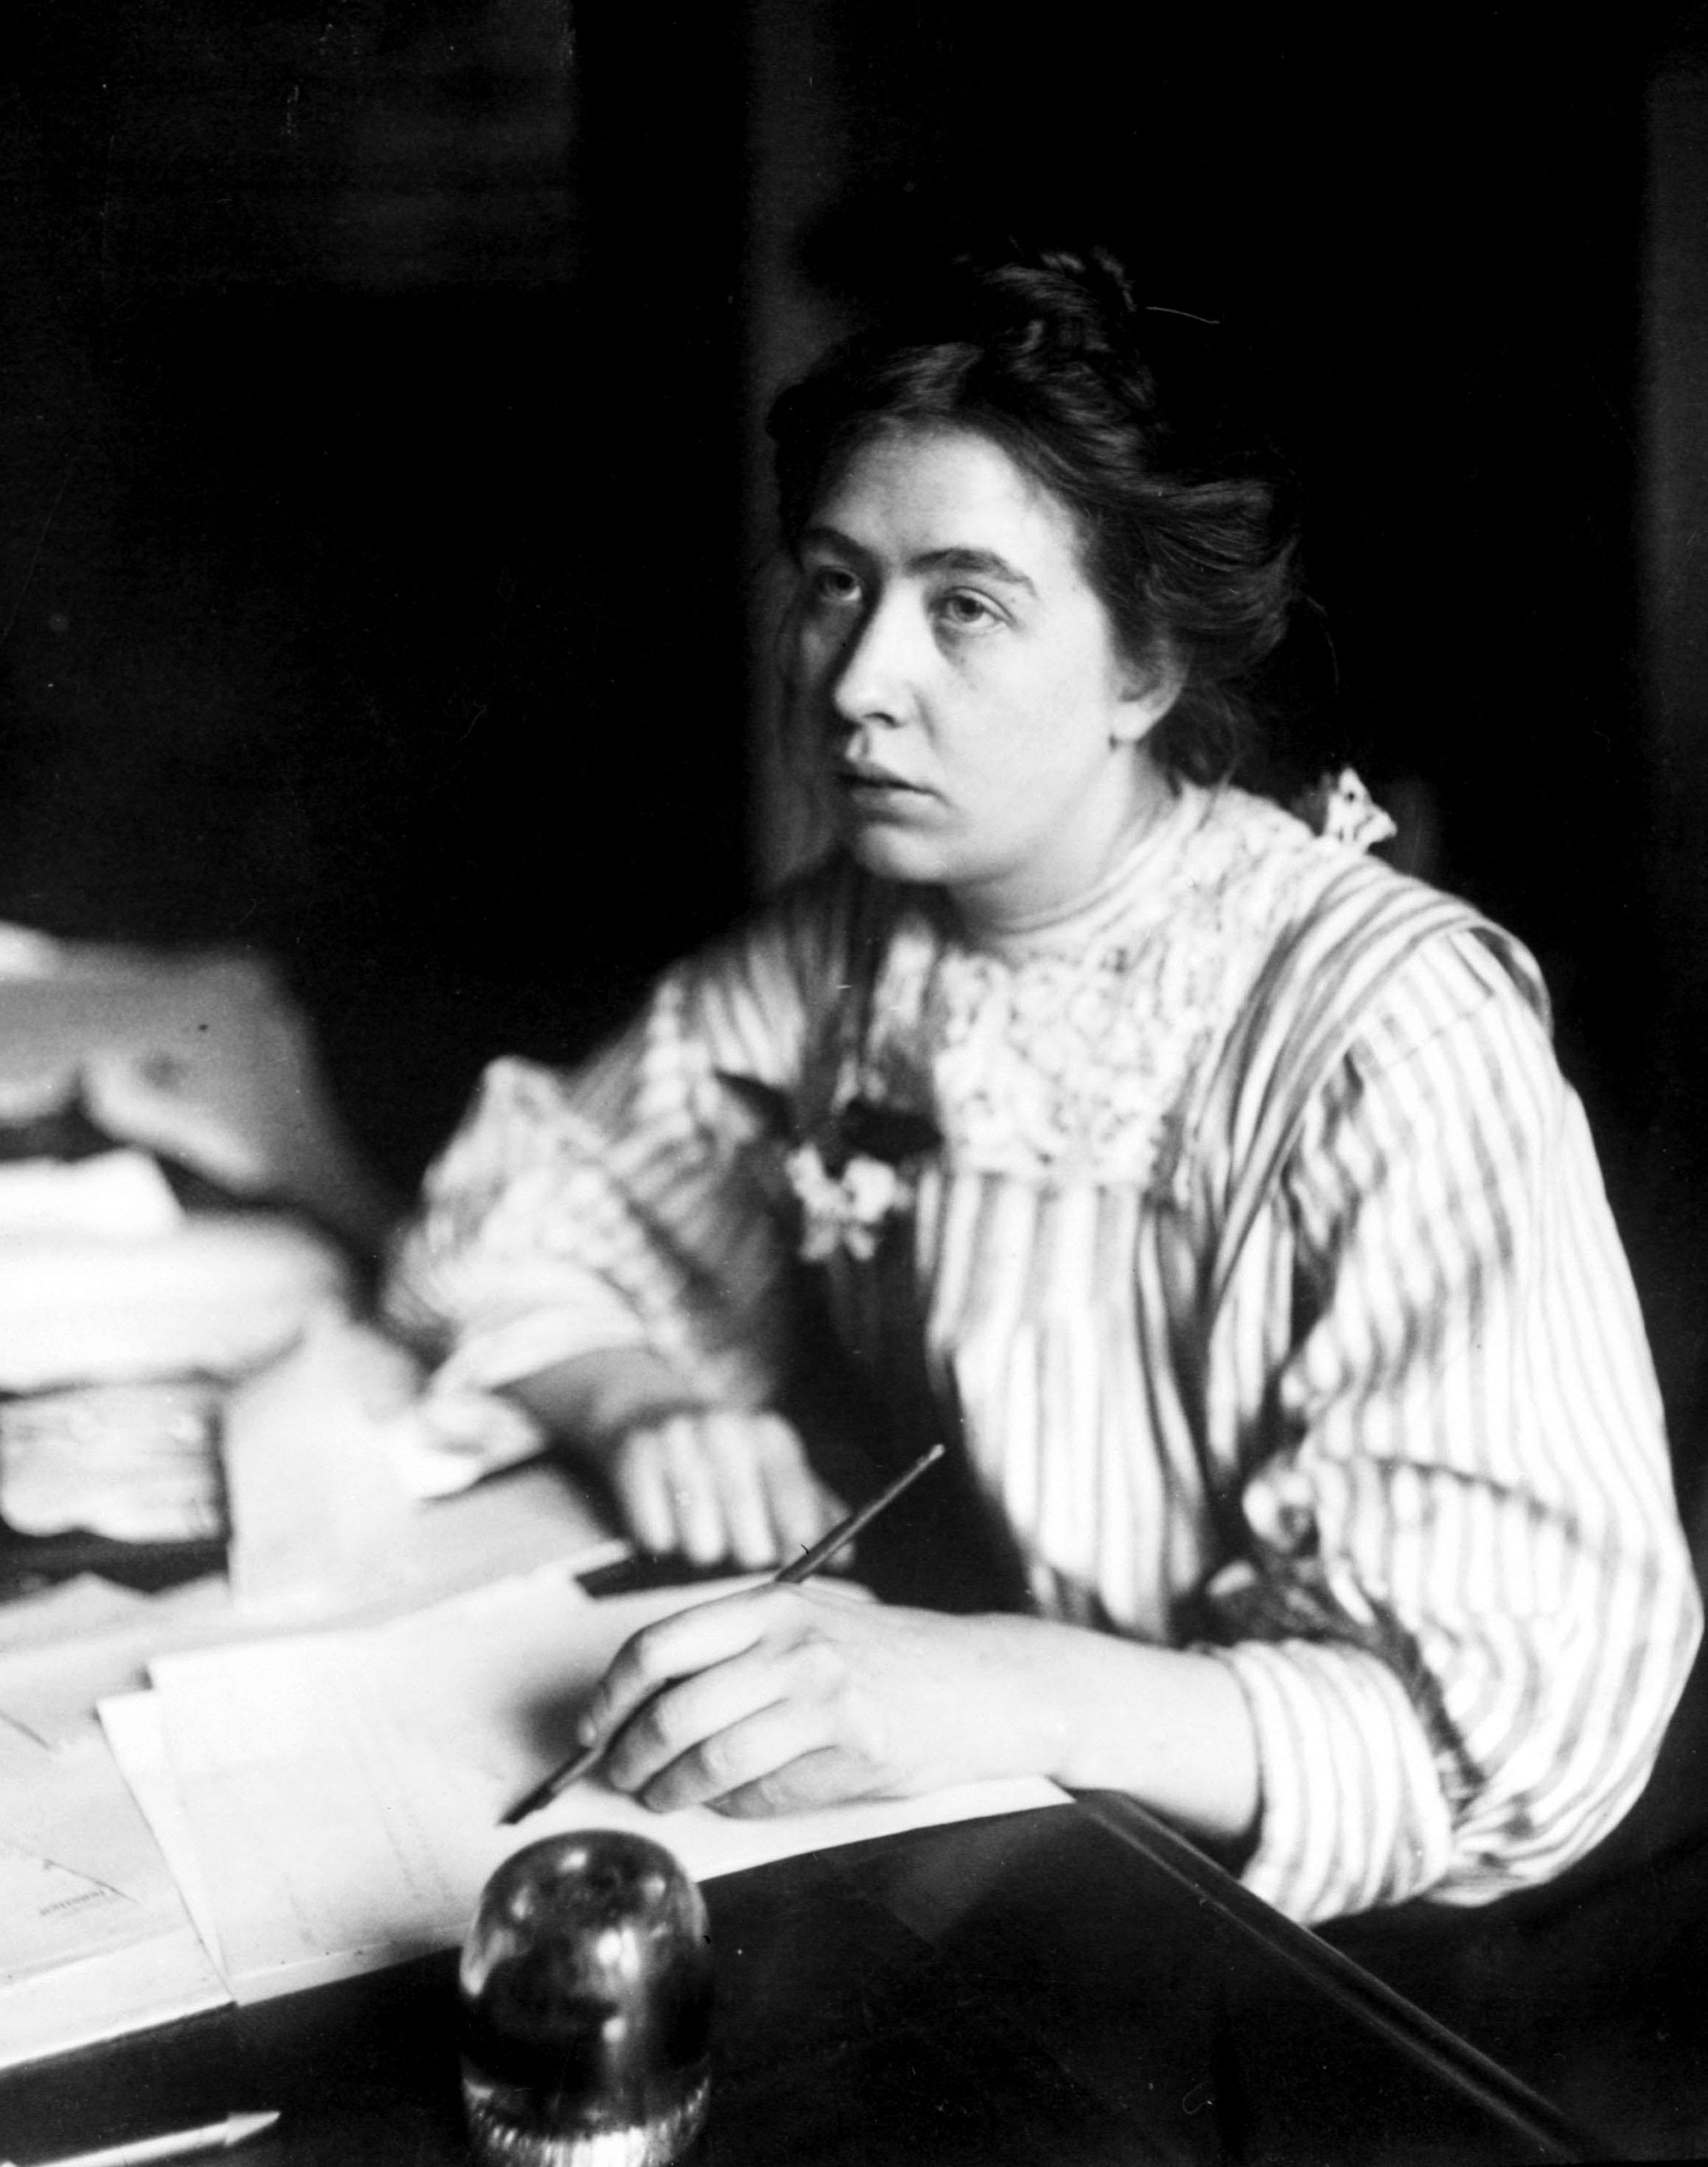 Suffragette Sylvia Pankhurst, who was one of Emmeline Pankhurst's three daughters, at her desk in 1911 (PA)